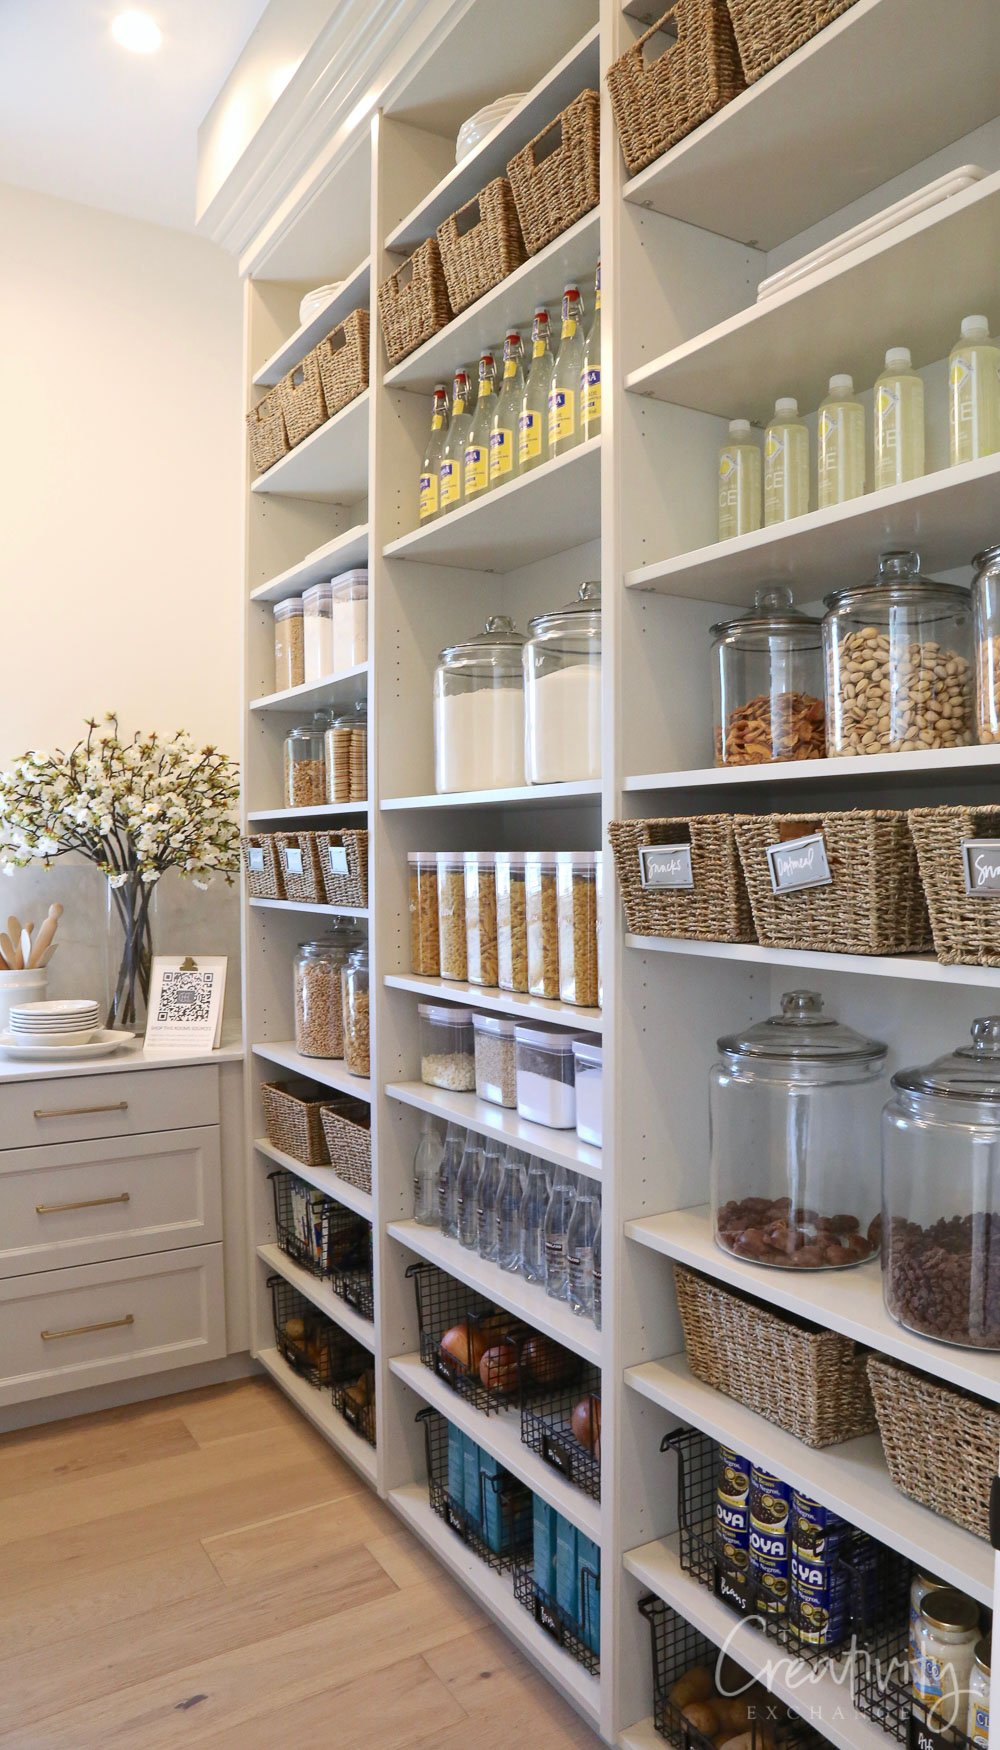 Large pantry with floor to ceiling open storage